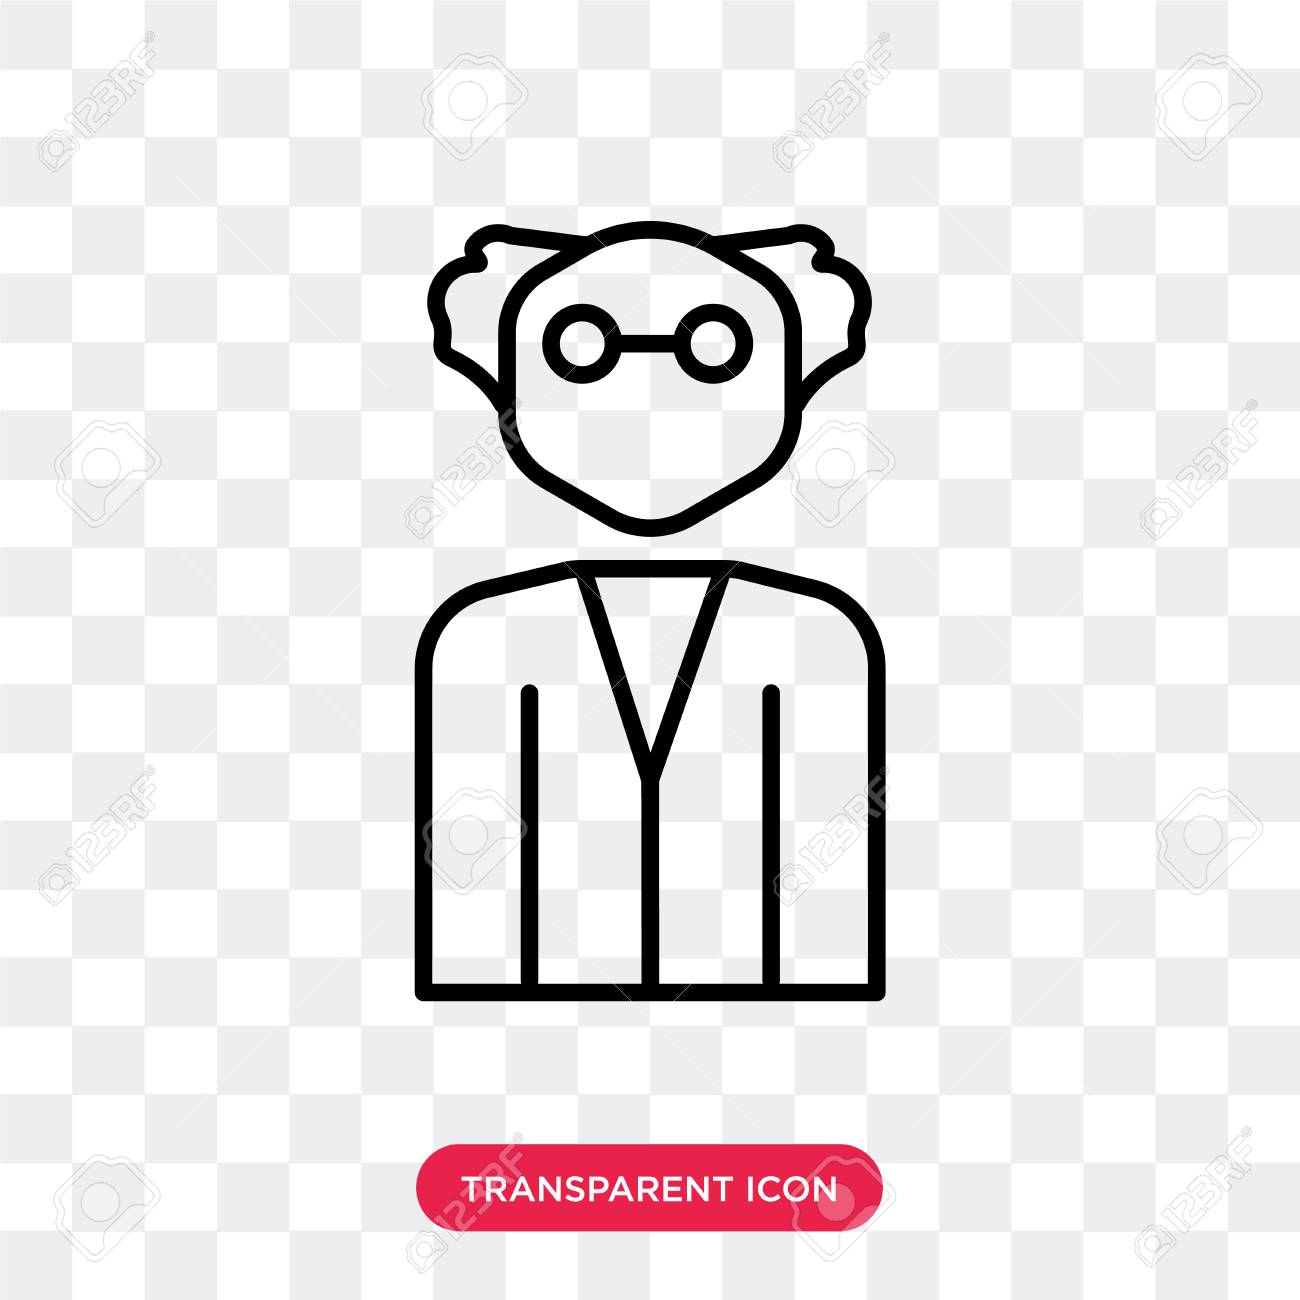 scientist vector icon isolated on transparent background scientist royalty free cliparts vectors and stock illustration image 107652076 scientist vector icon isolated on transparent background scientist